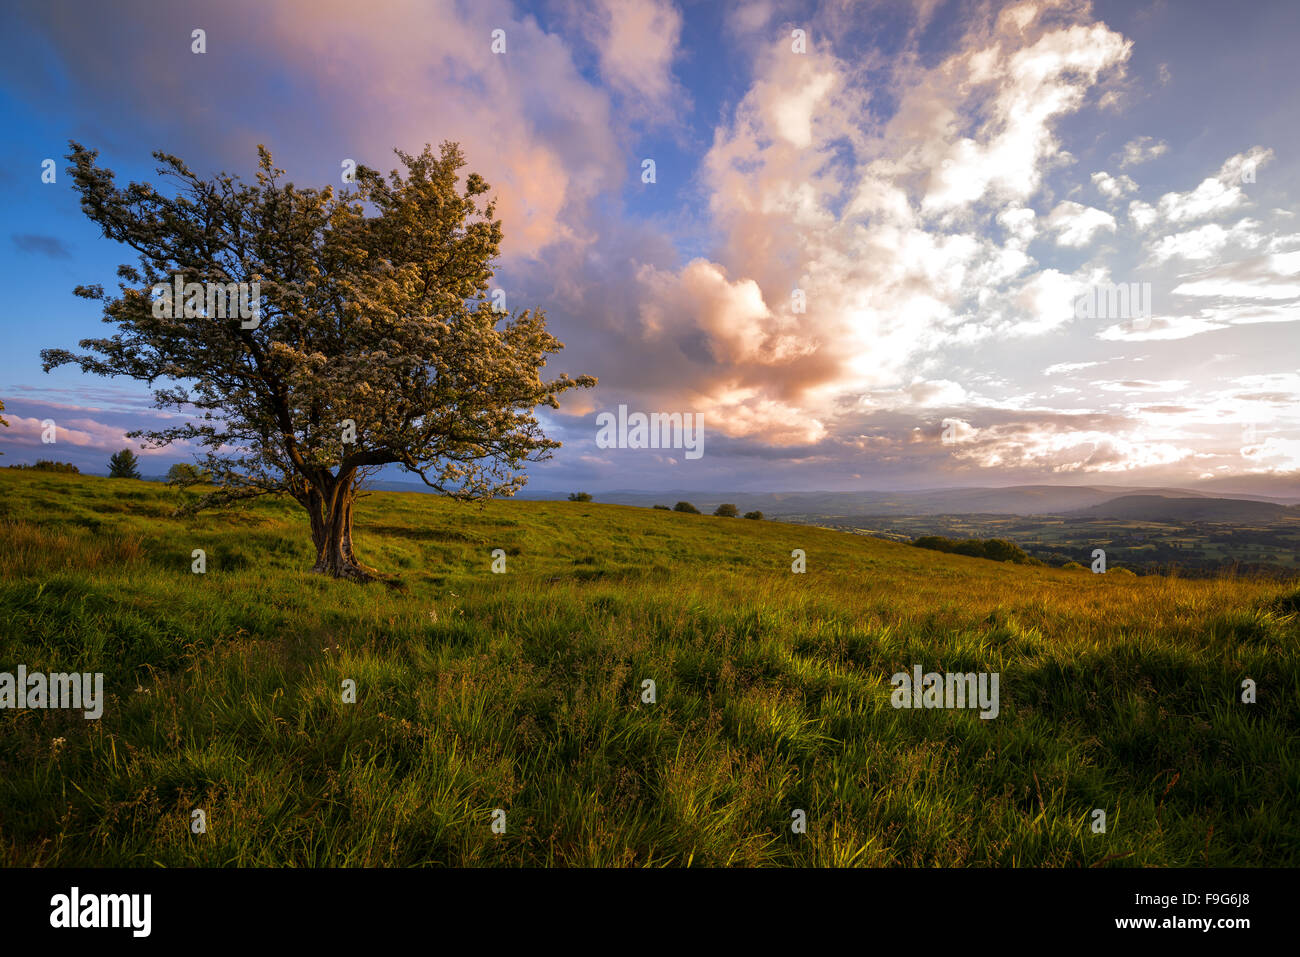 A stormy sunset over the hills of Mid Wales, with a Hawthorn Tree in the foreground. - Stock Image